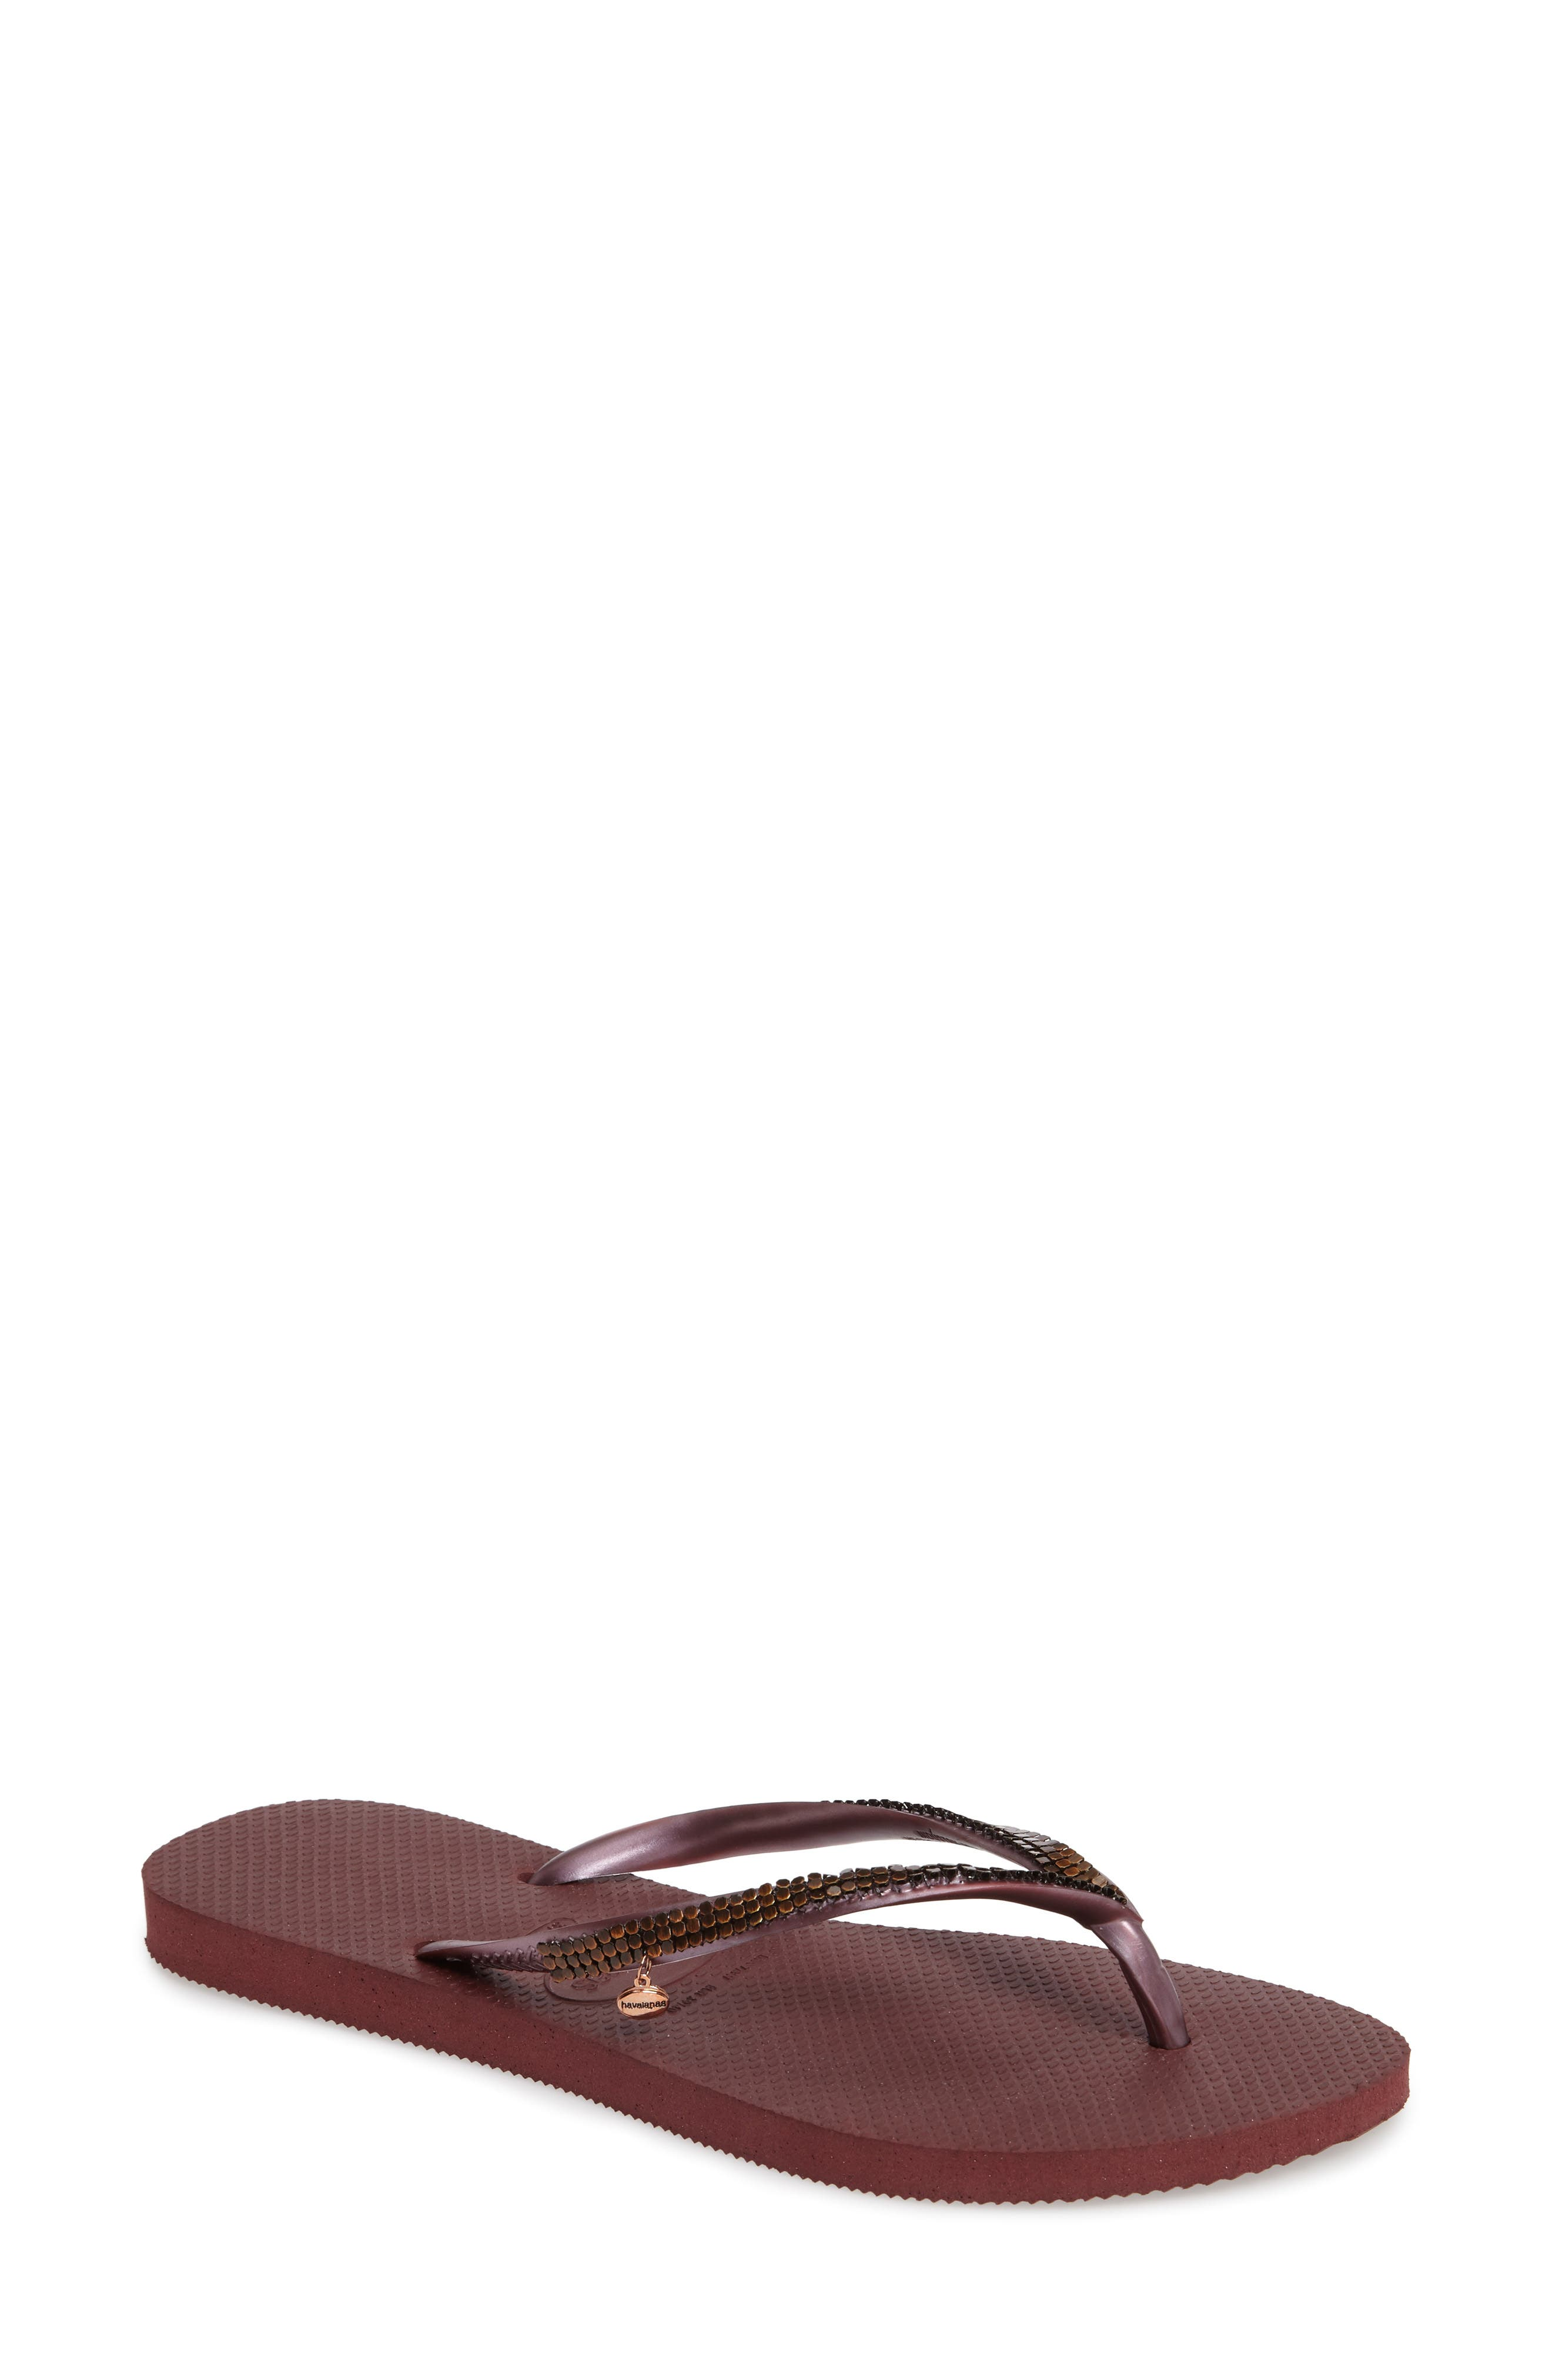 'Slim Metal Mesh' Flip Flop,                         Main,                         color, 500